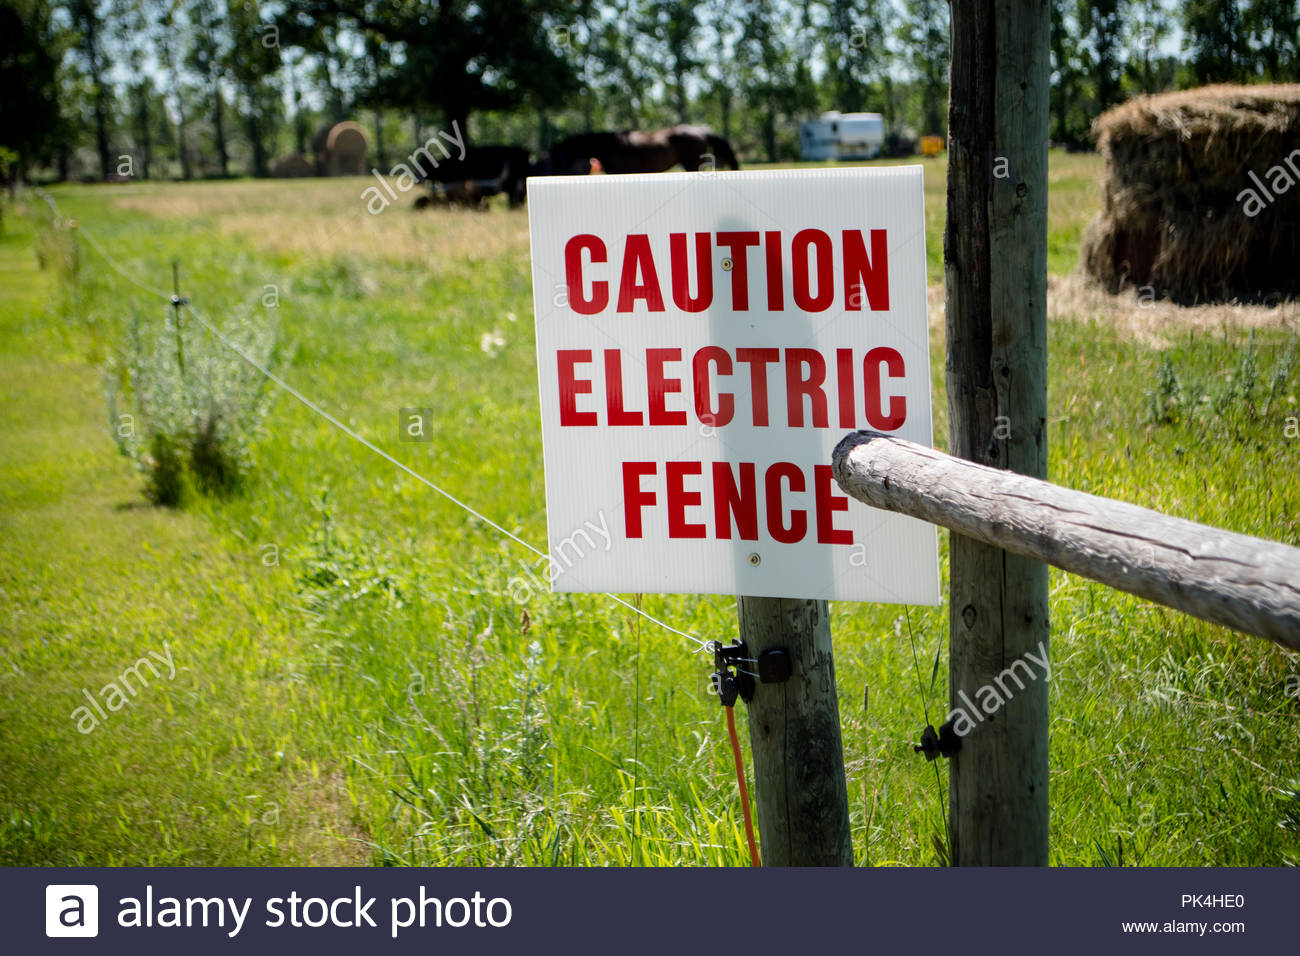 Electric Farm Fence Warning Signs Great Installation Of Wiring Energizer Diagram There Is An Sign On The Stock Photo Rh Alamy Com Adult Diy